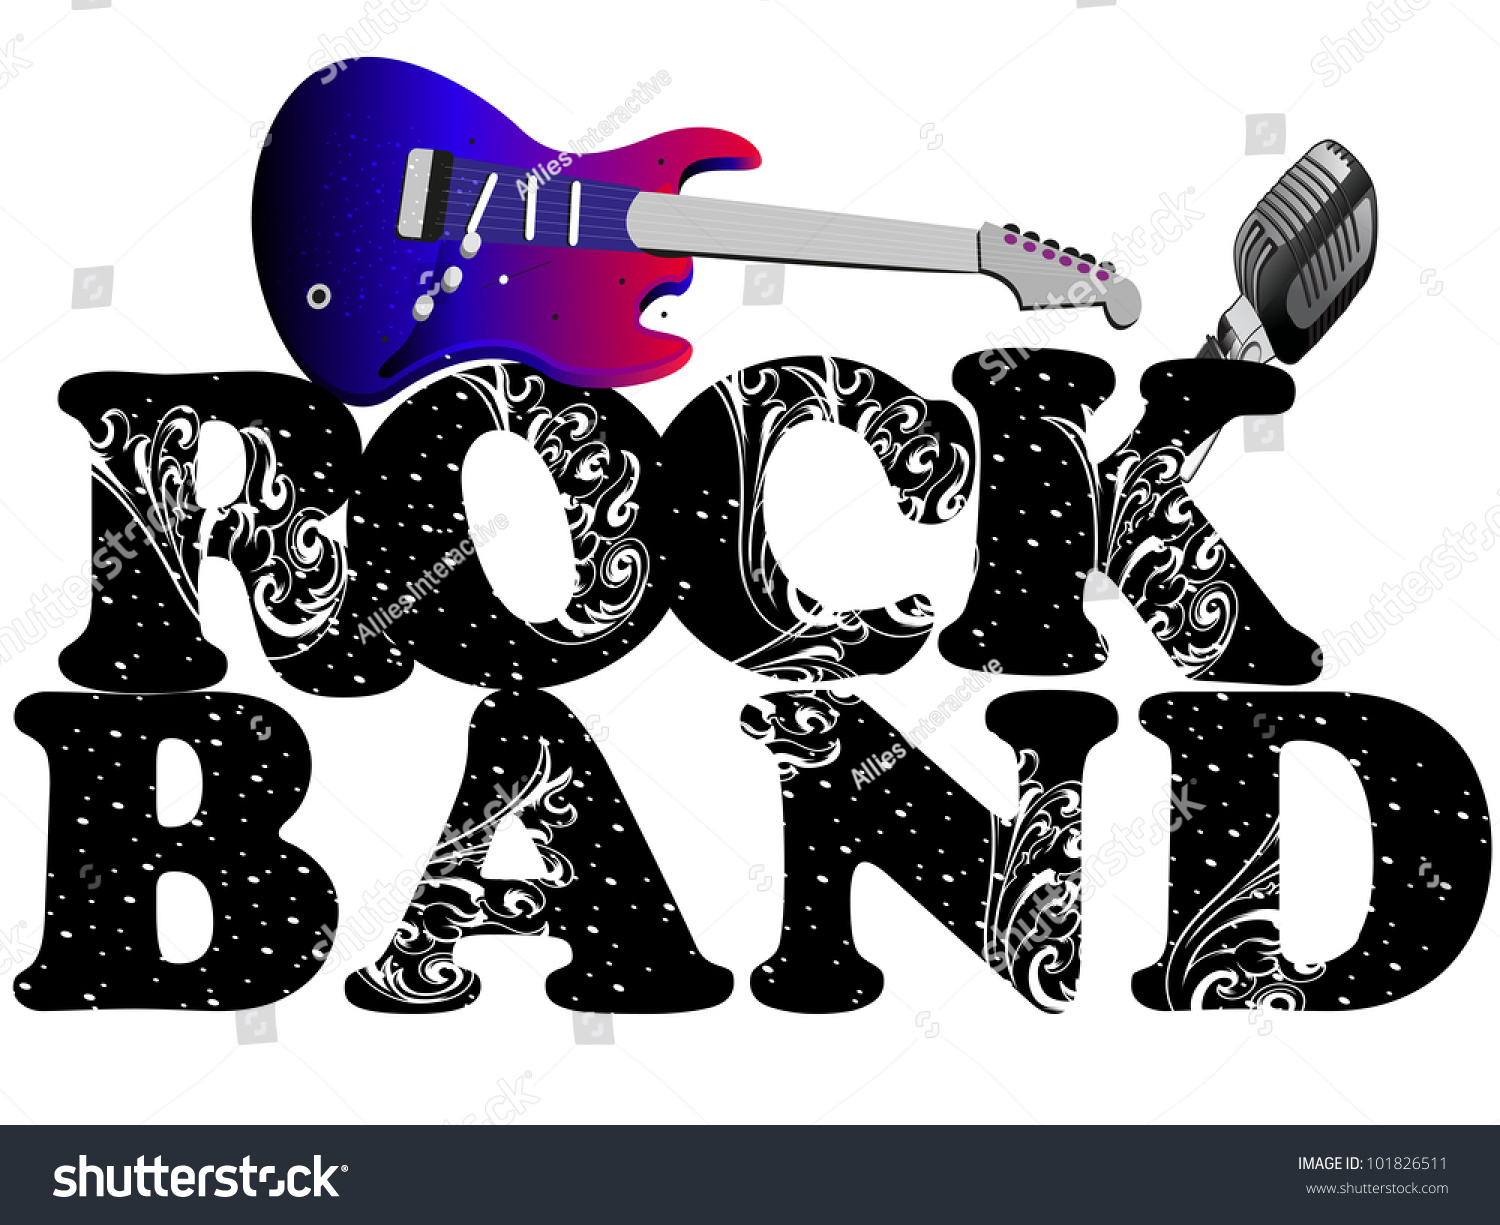 Text Rock Music Monochrome Music Bands 2652x2284 Wallpaper: Retro Musical Background Guitar Microphone Floral Stock